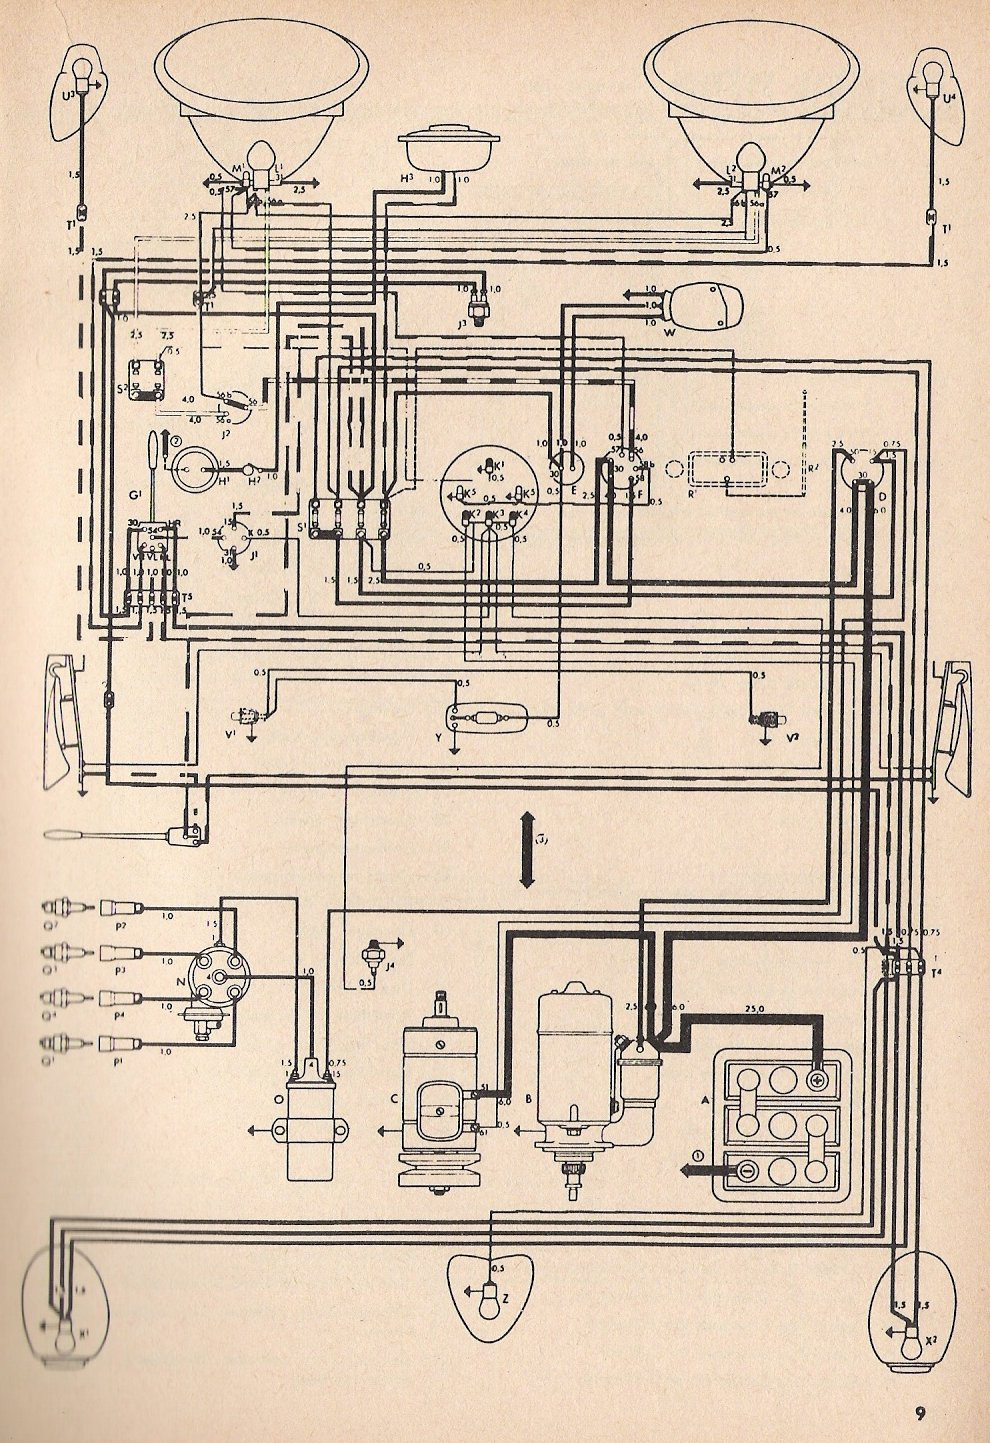 Type 1 Wiring Diagrams Diagram Schematic Difference